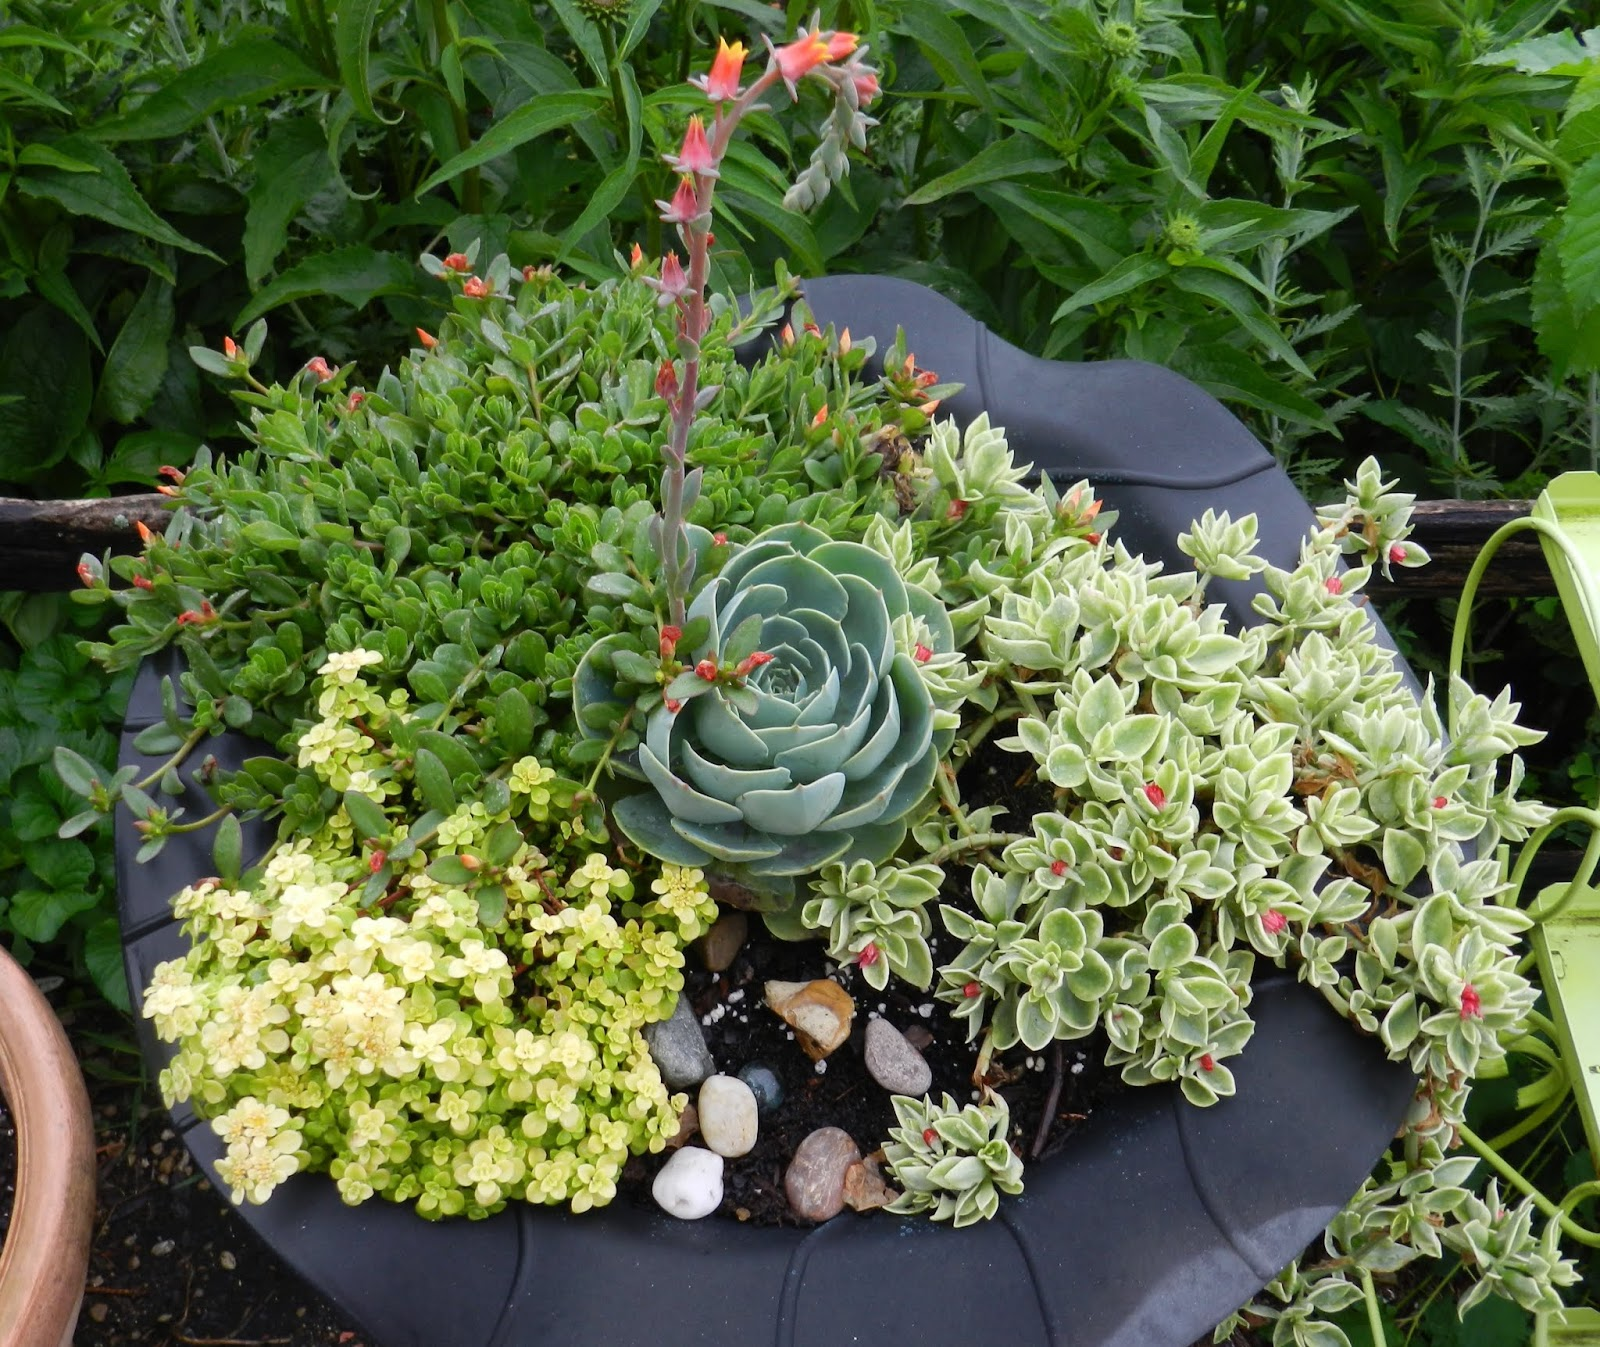 Ive Discovered I Really Like Succulents This Combo In An